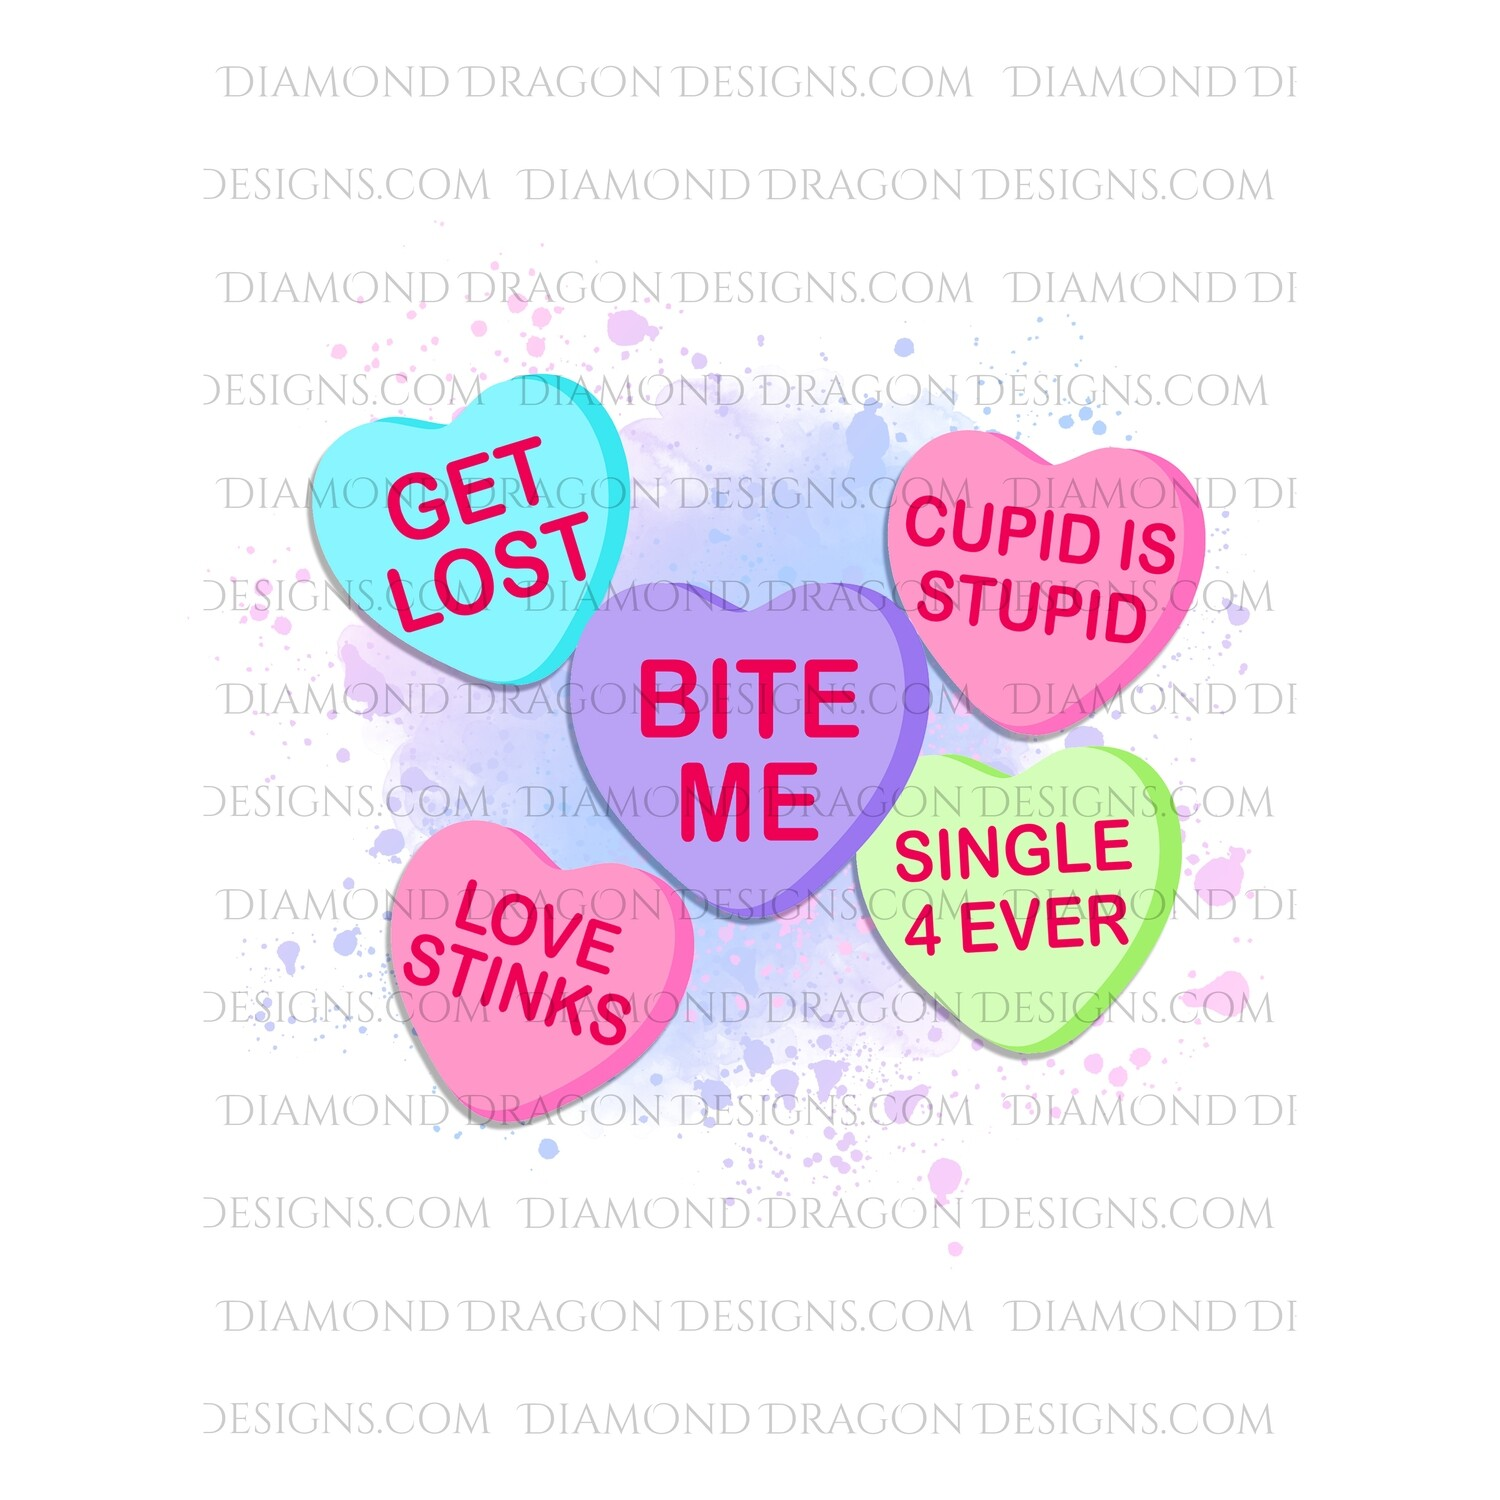 Valentines - Anti Valentines, Heart Candy Sayings, Sweethearts, Candy Hearts, Funny, Valentine's Day, Digital Image